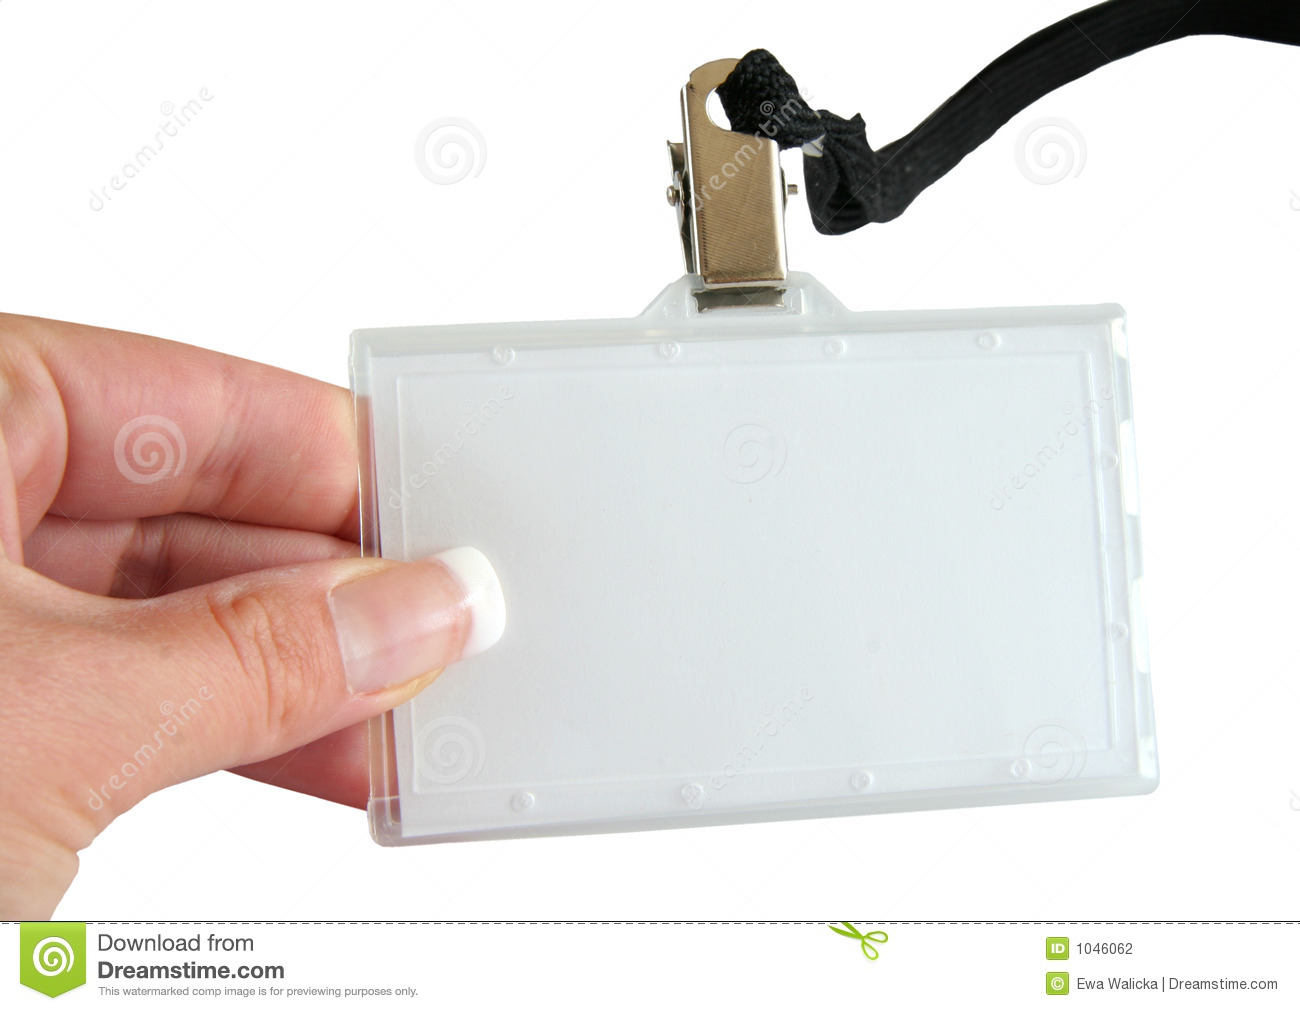 Name Tag And Hand Stock Photography - Image: 1046062